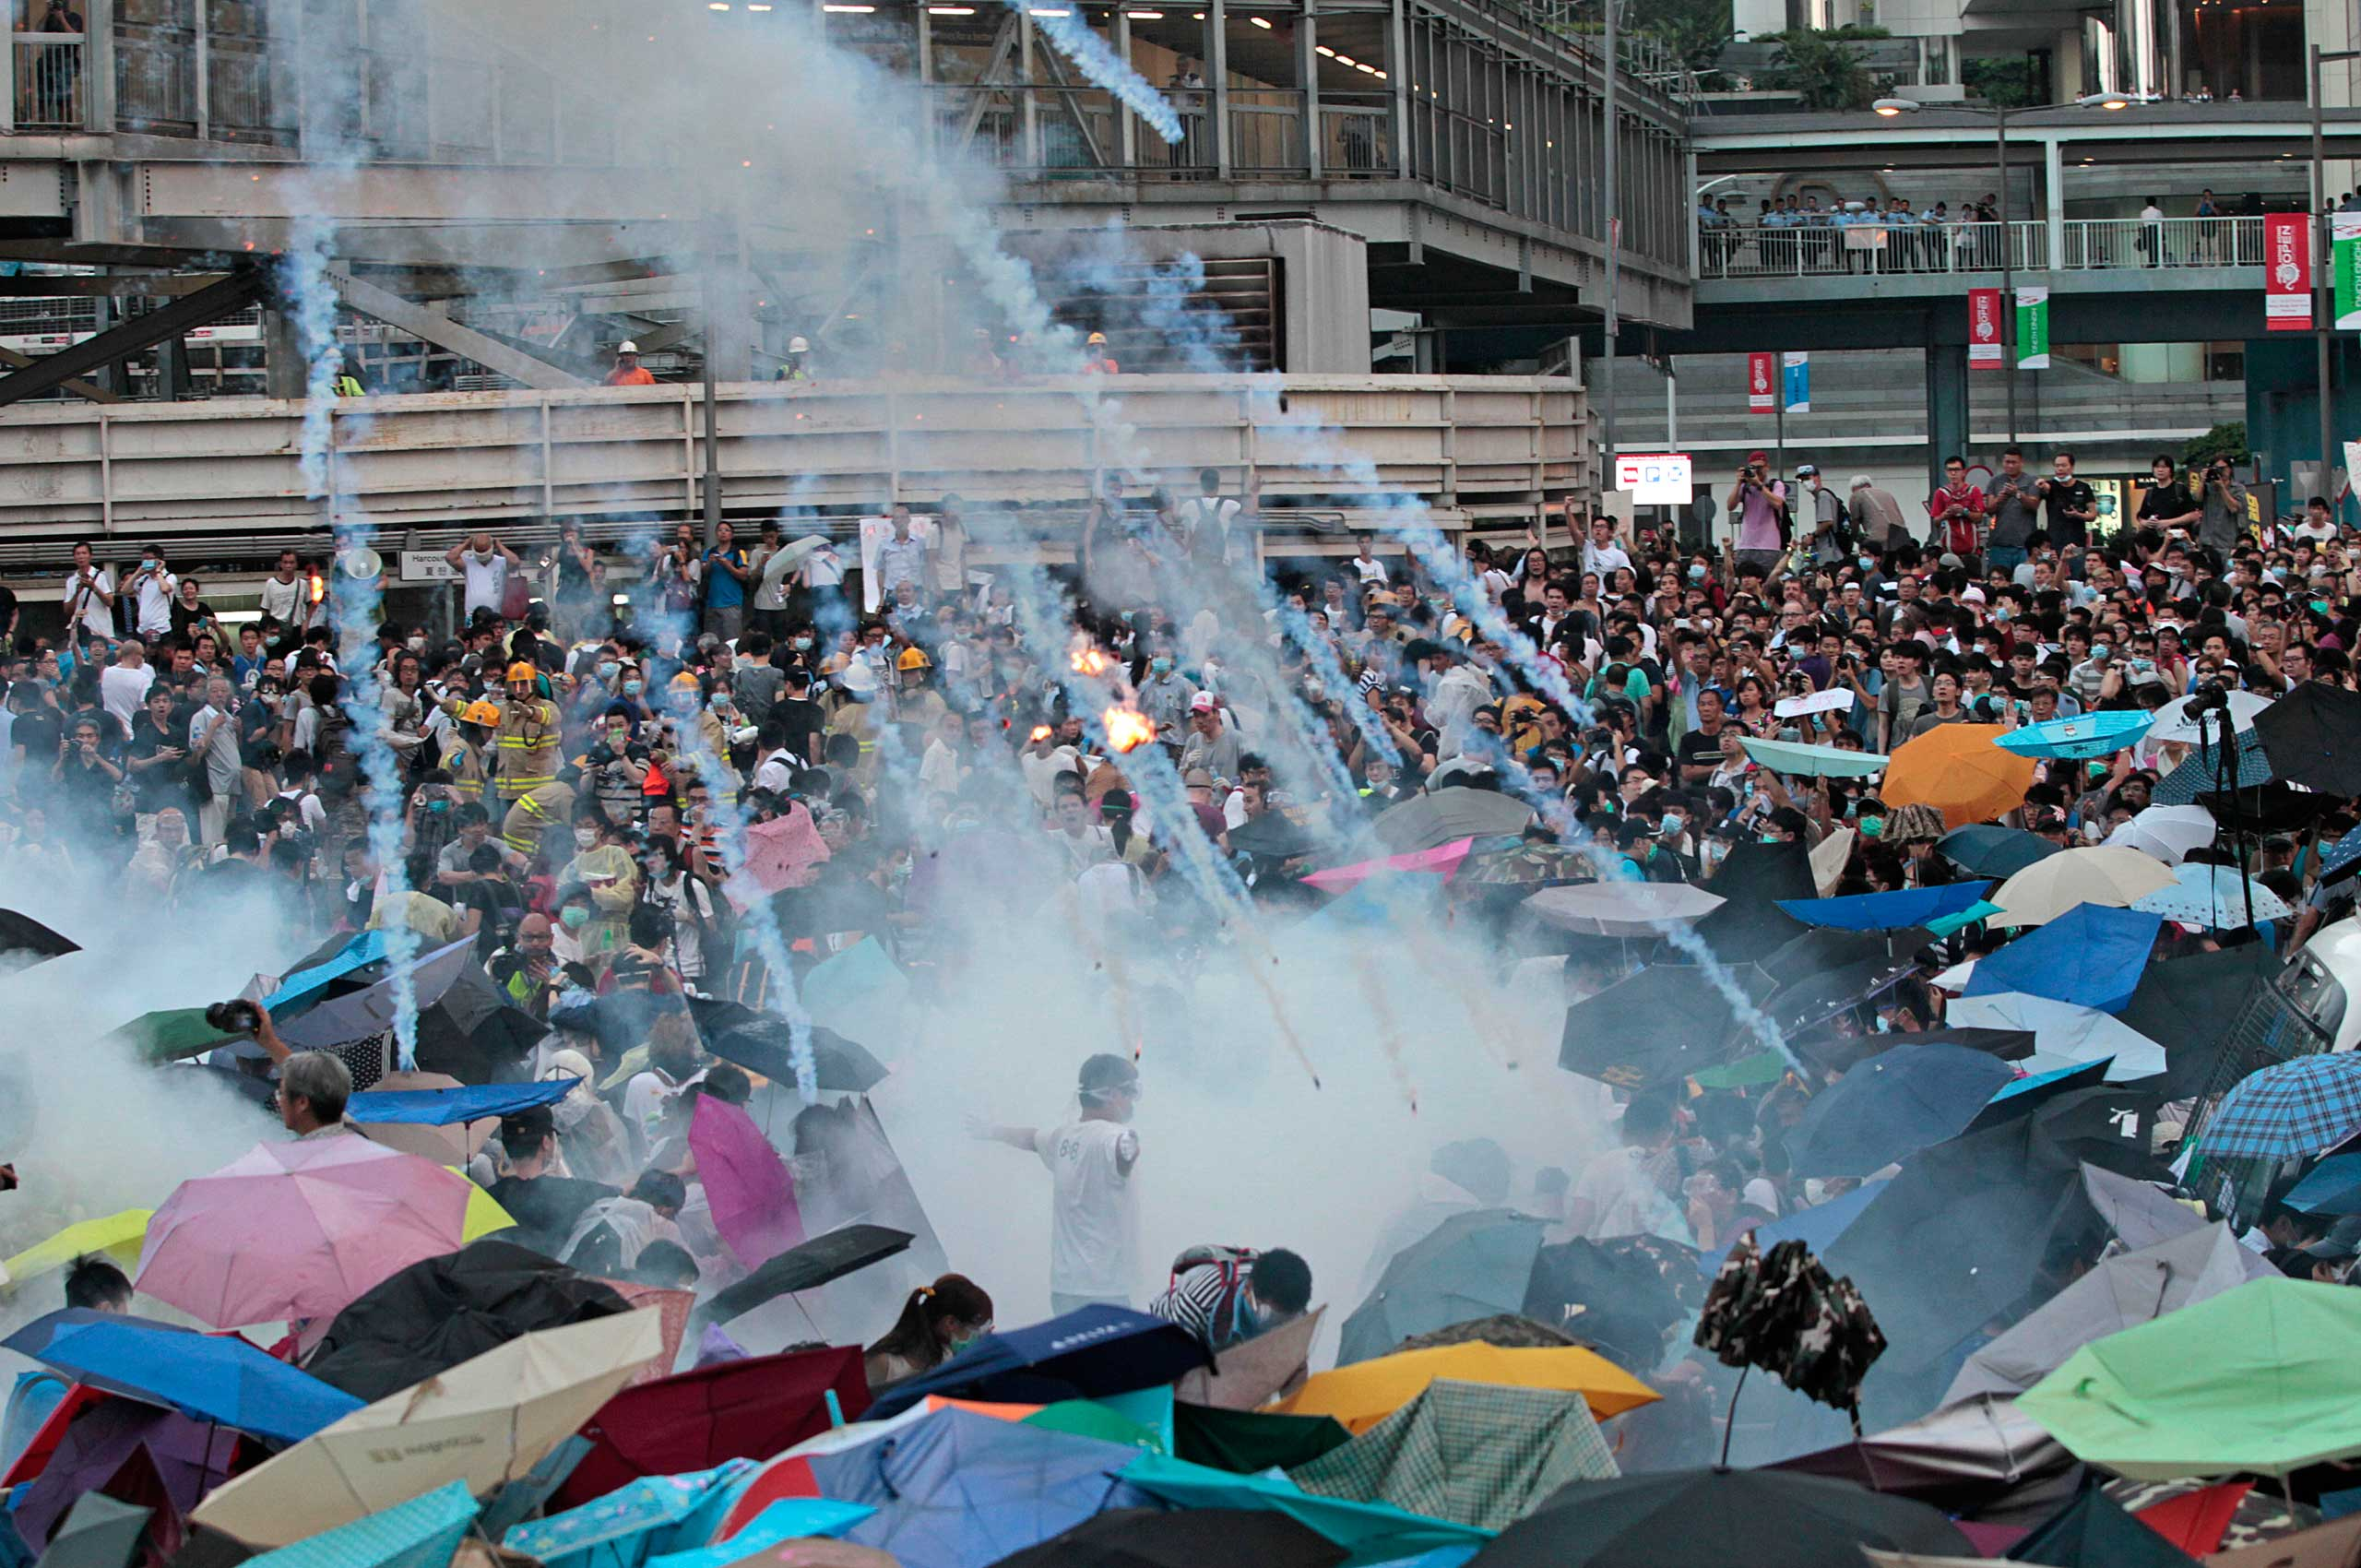 Riot police launch tear gas into the crowd as thousands of protesters surround the government headquarters in Hong Kong, Sept. 28, 2014.